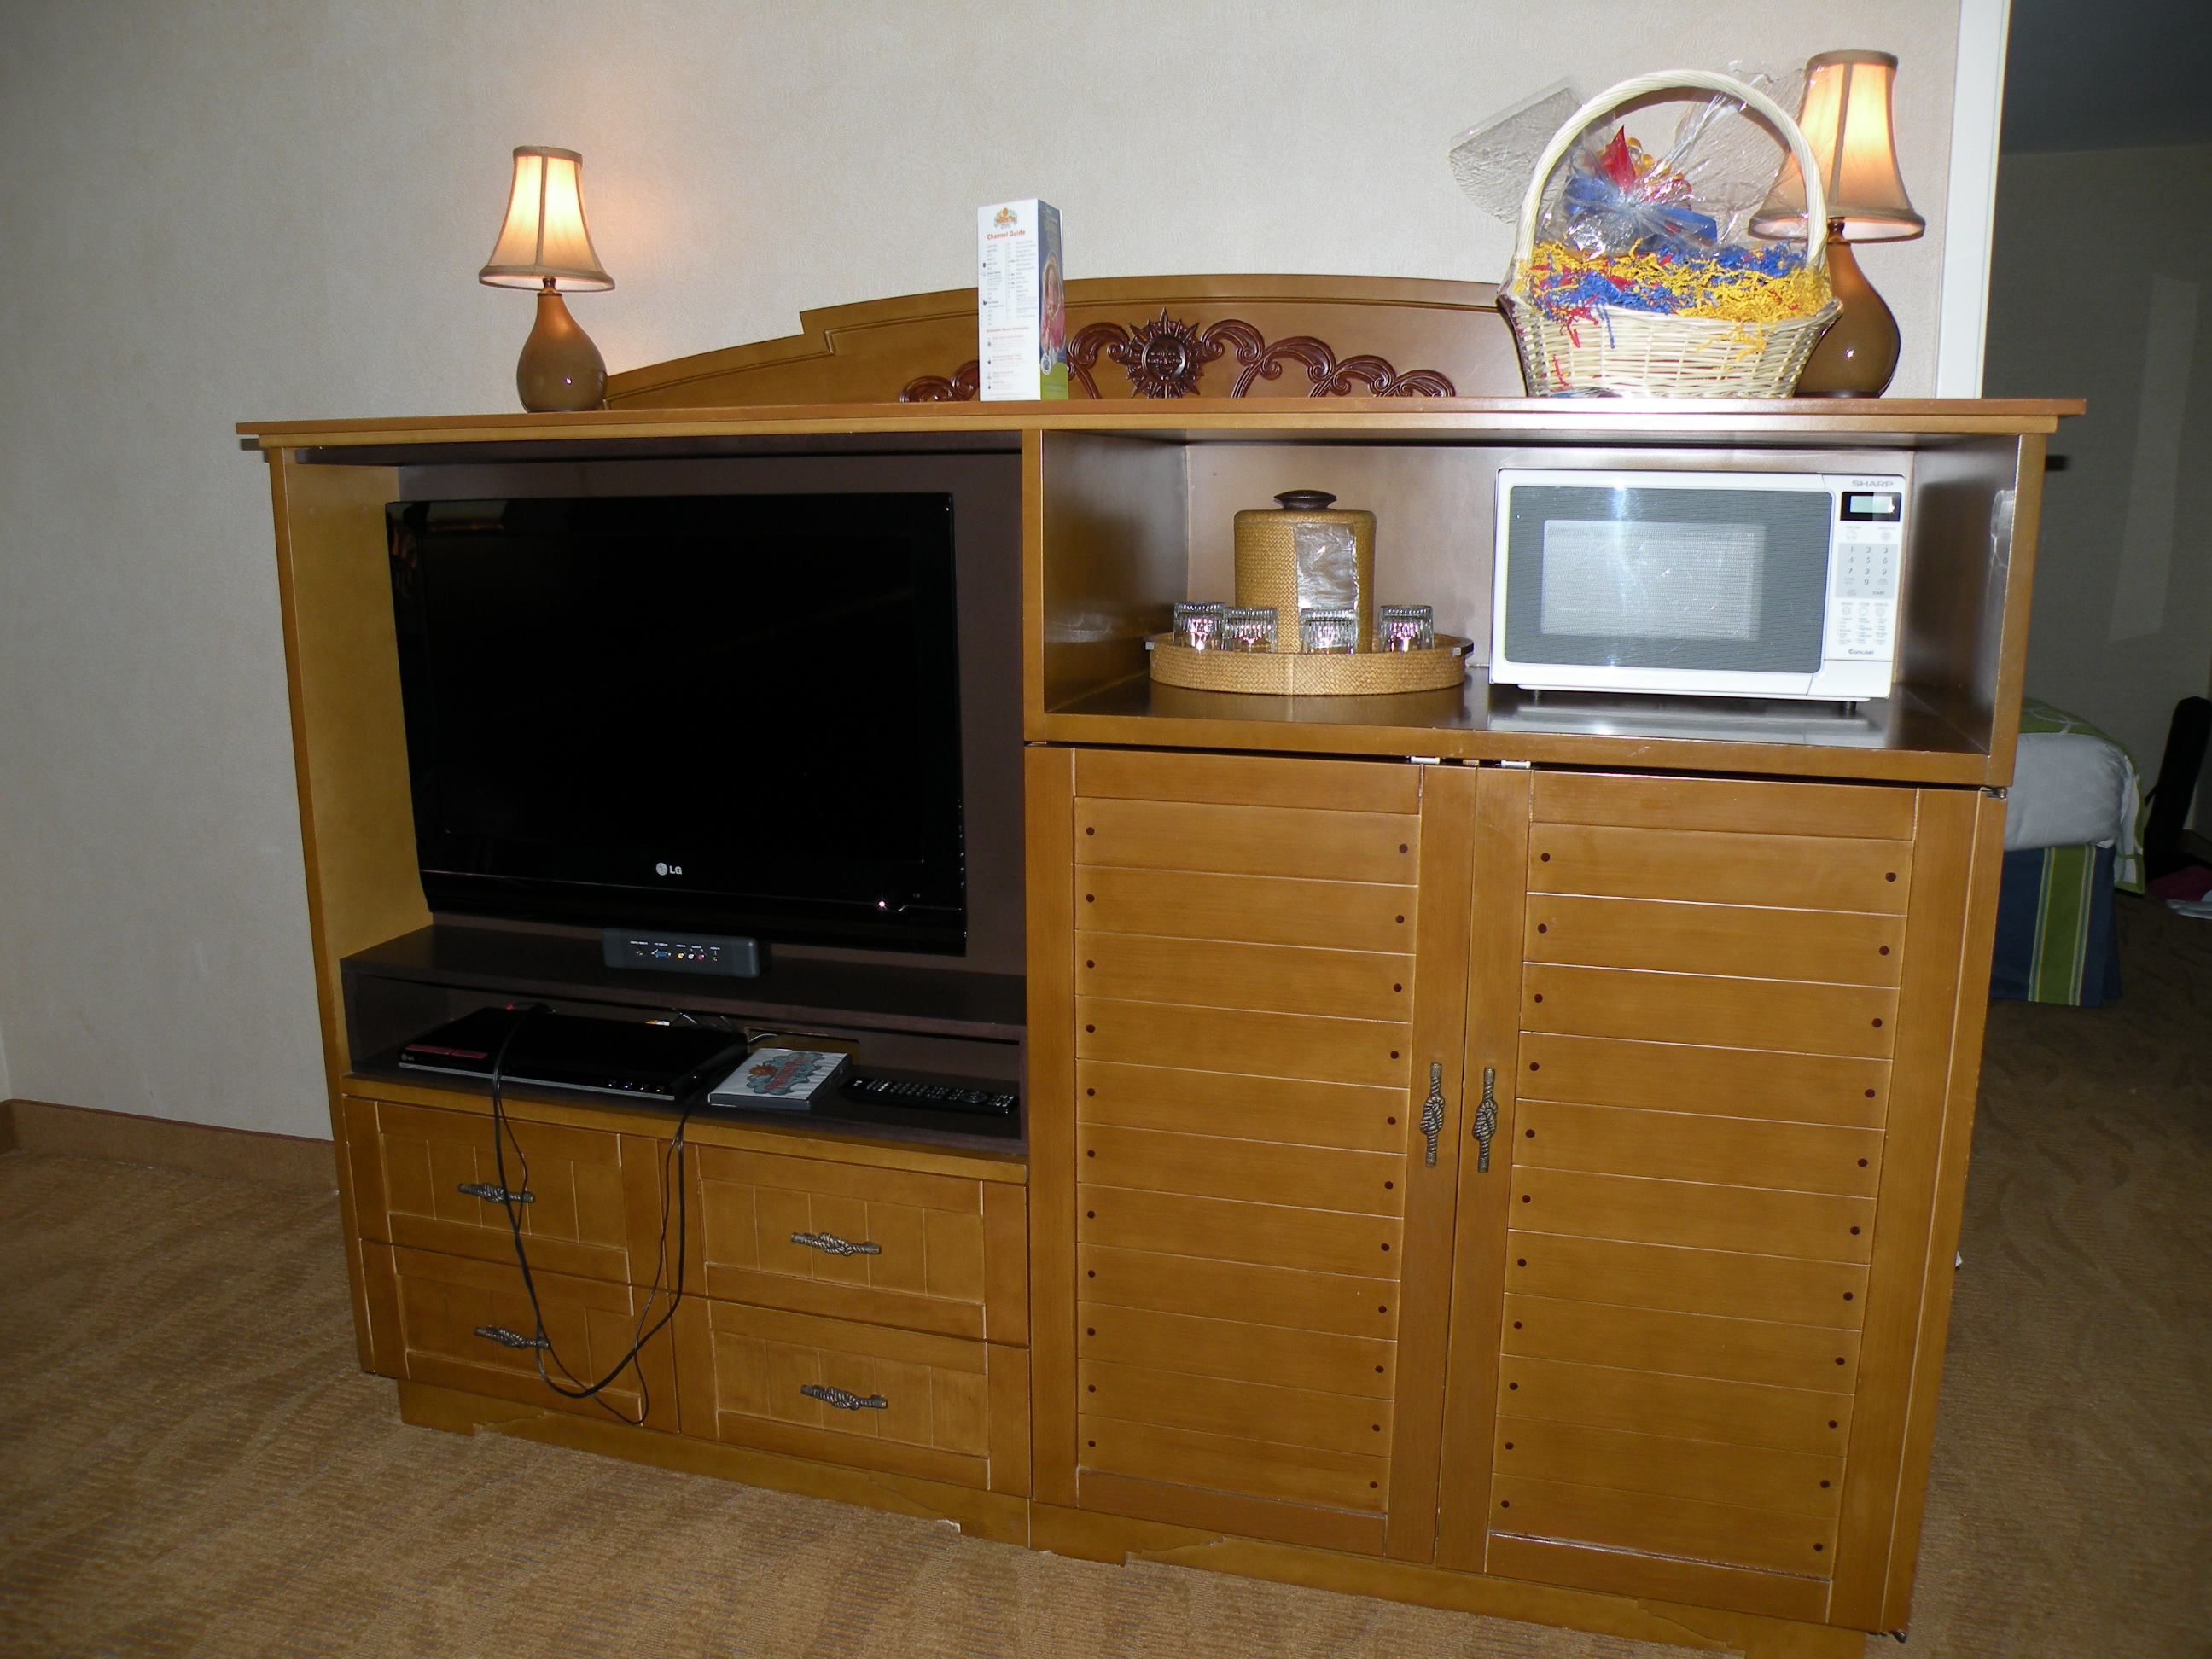 TV and Microwave in Sitting Room